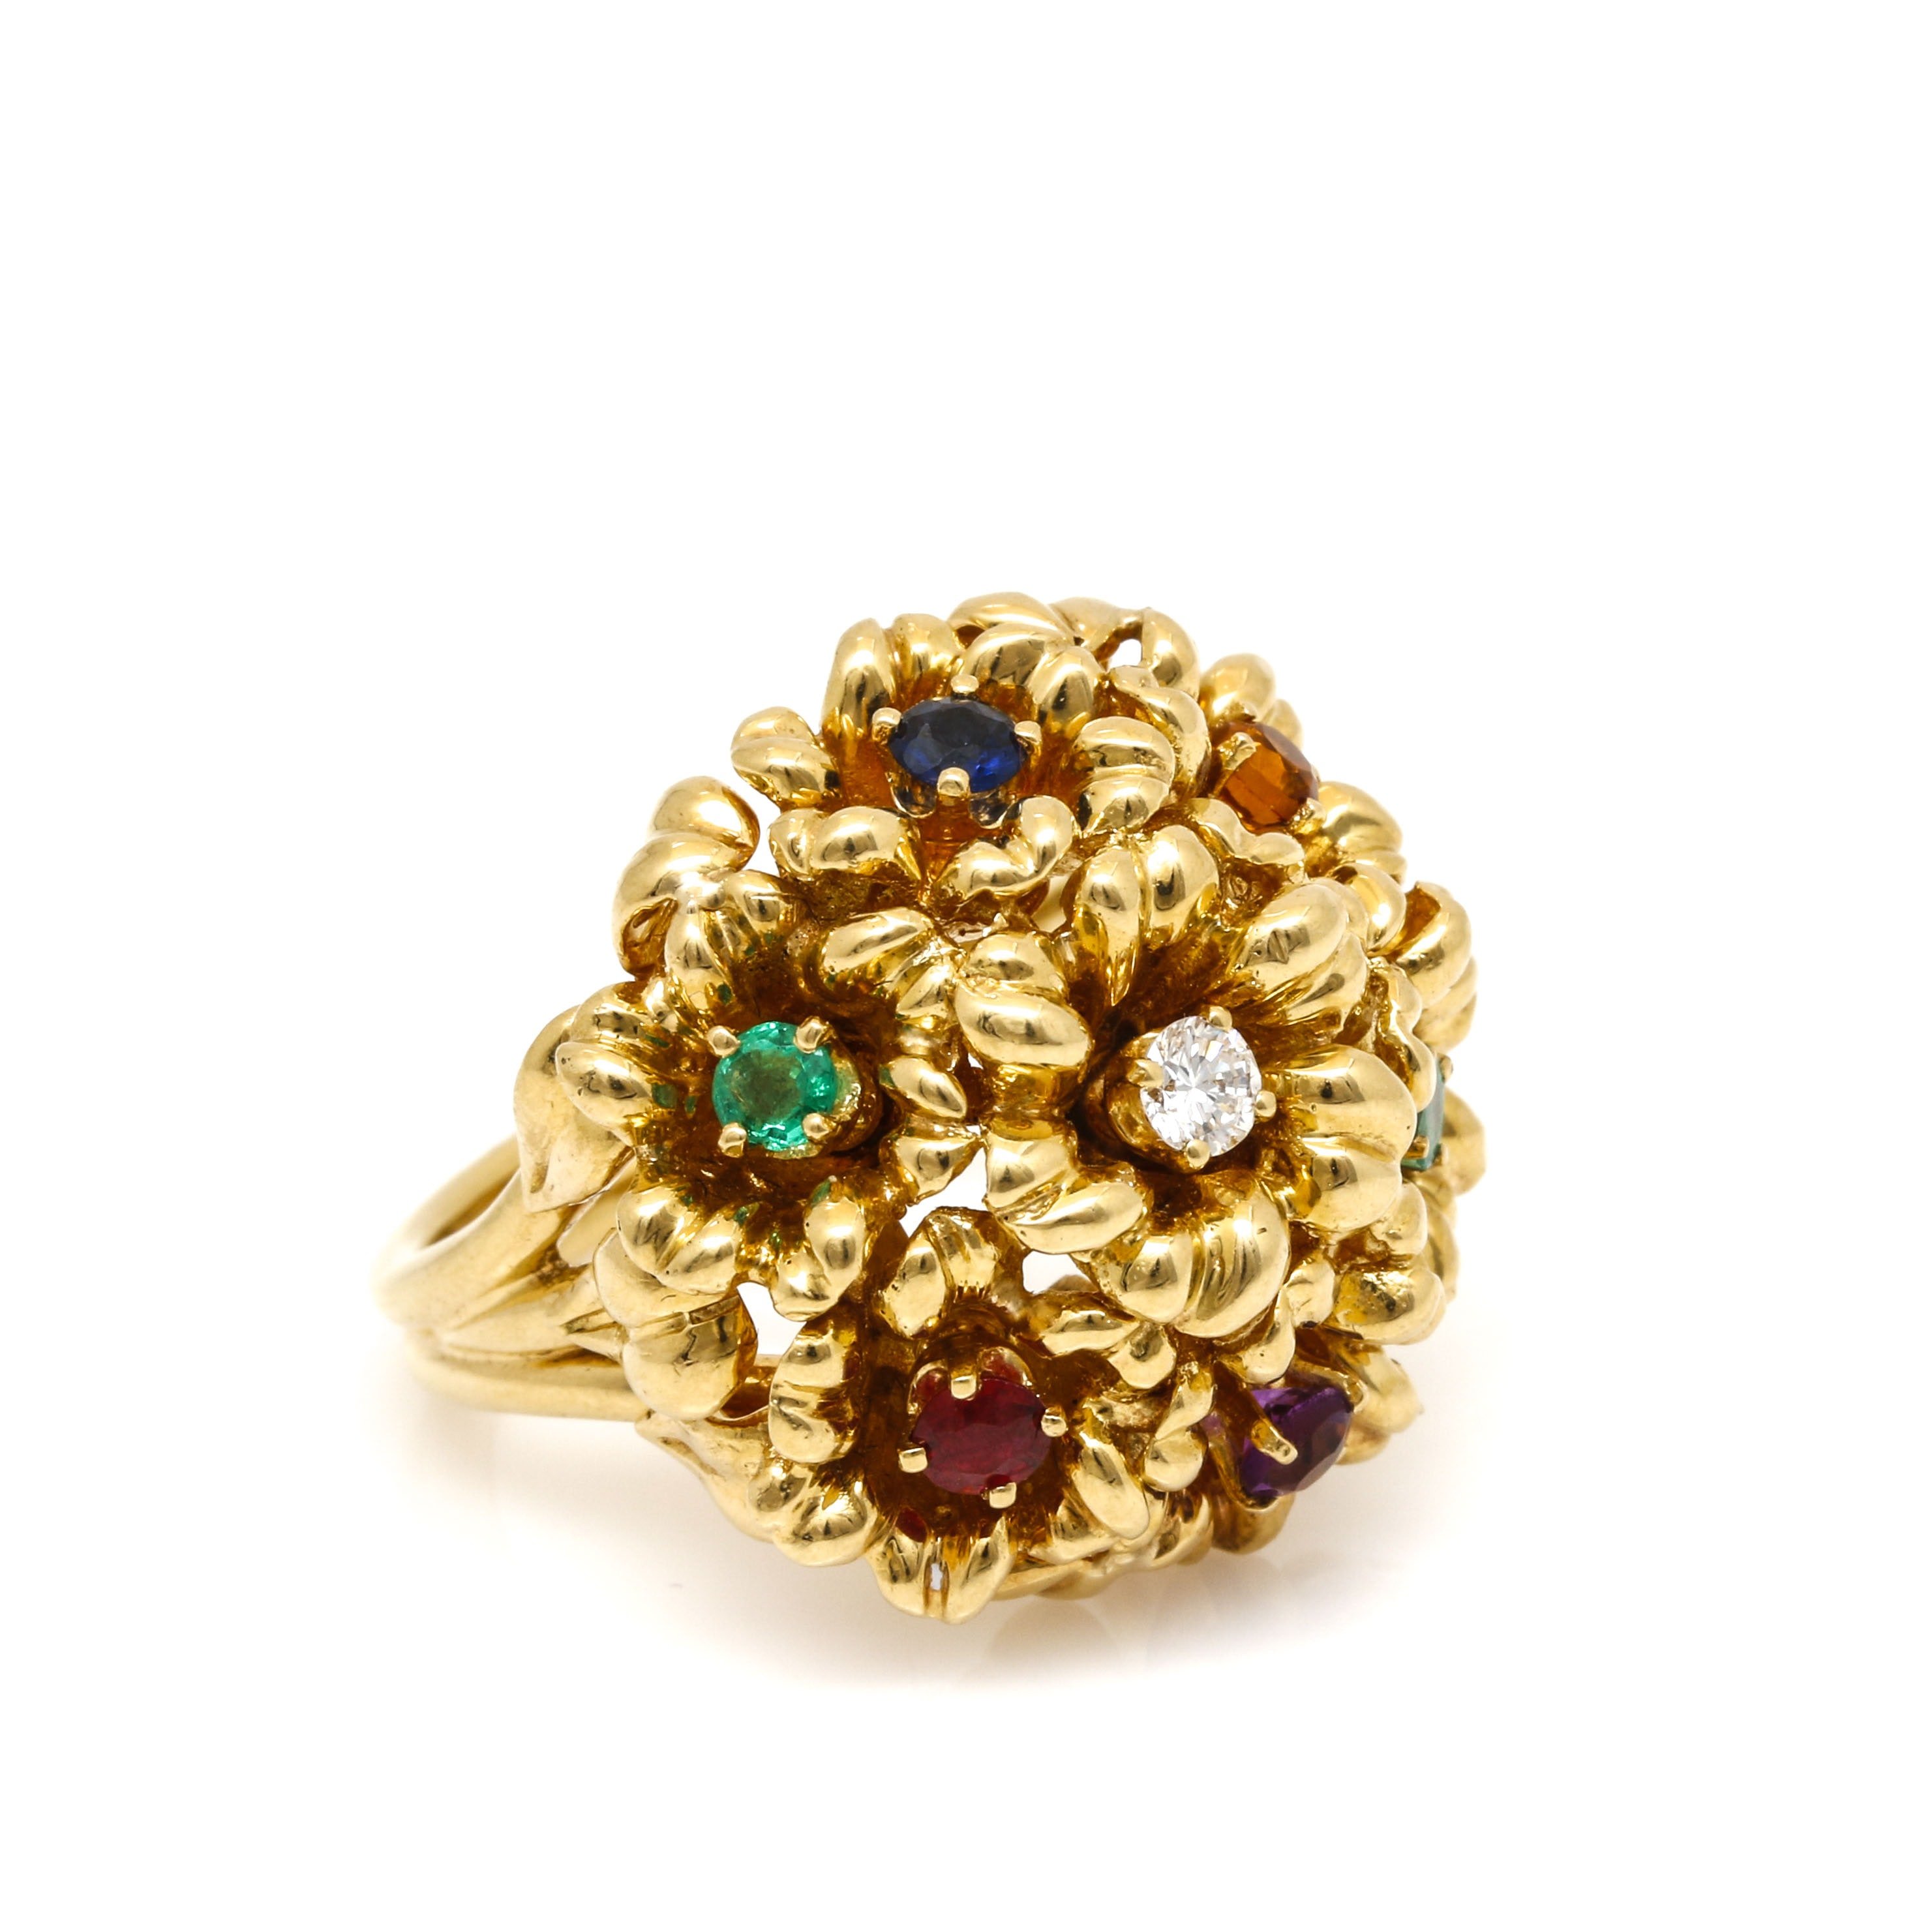 Henry Dankner 18K Yellow Gold Gemstone Floral Ring